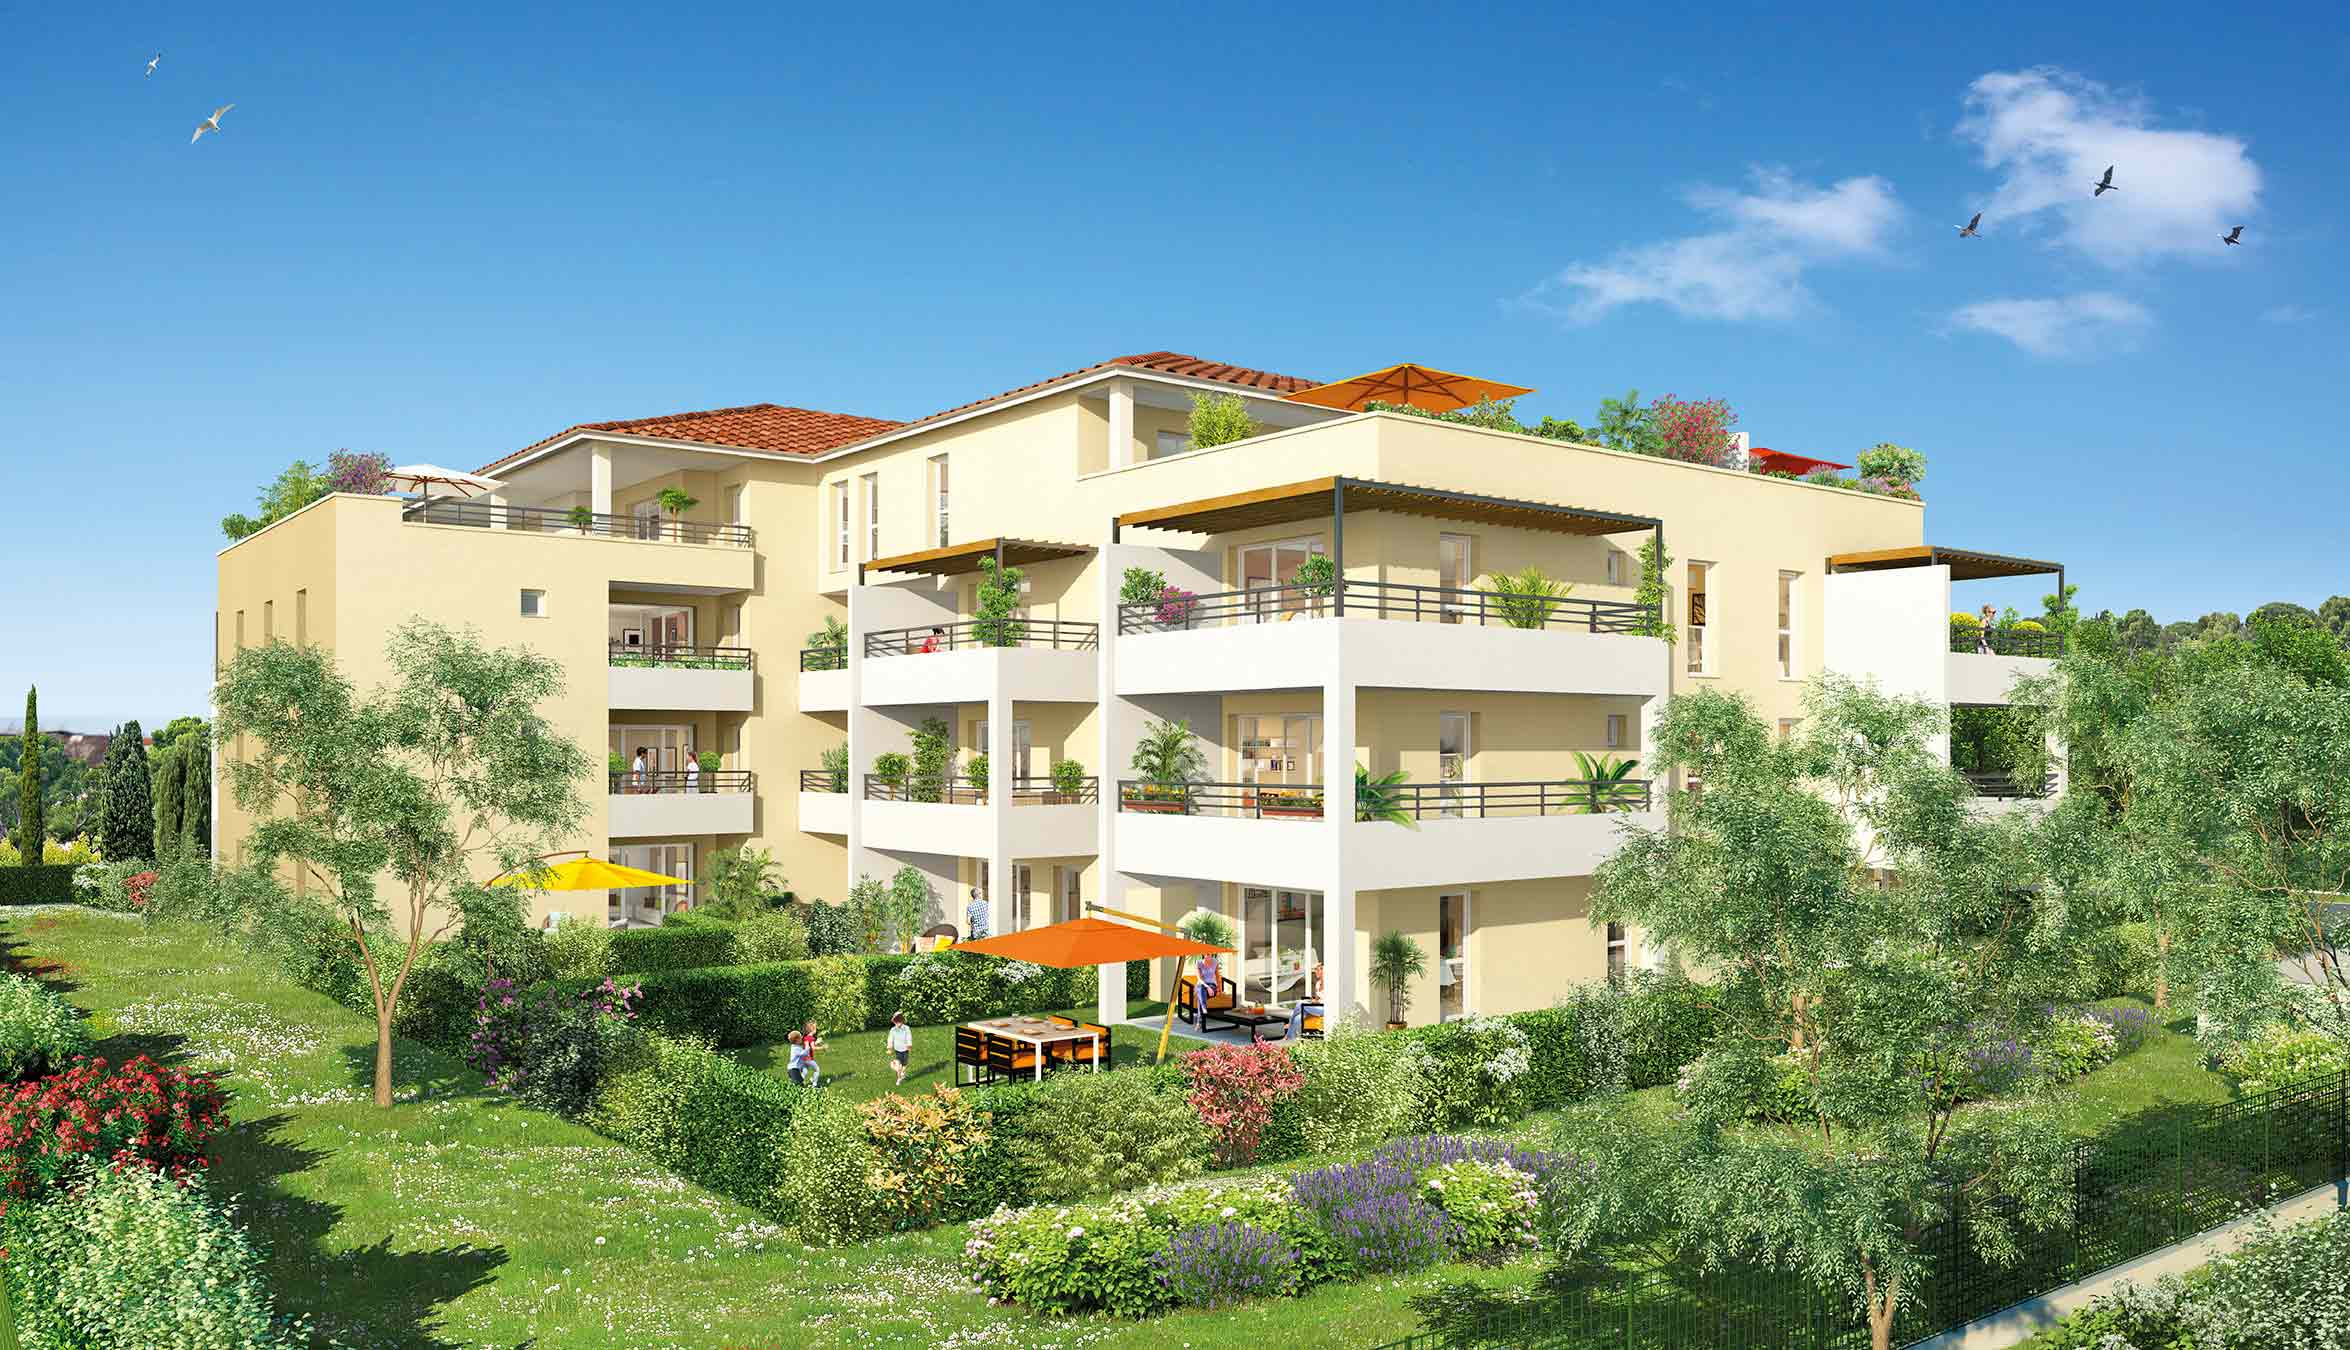 Programme immobilier neuf montpellier les bonnes astuces for Programme immobilier neuf 2017